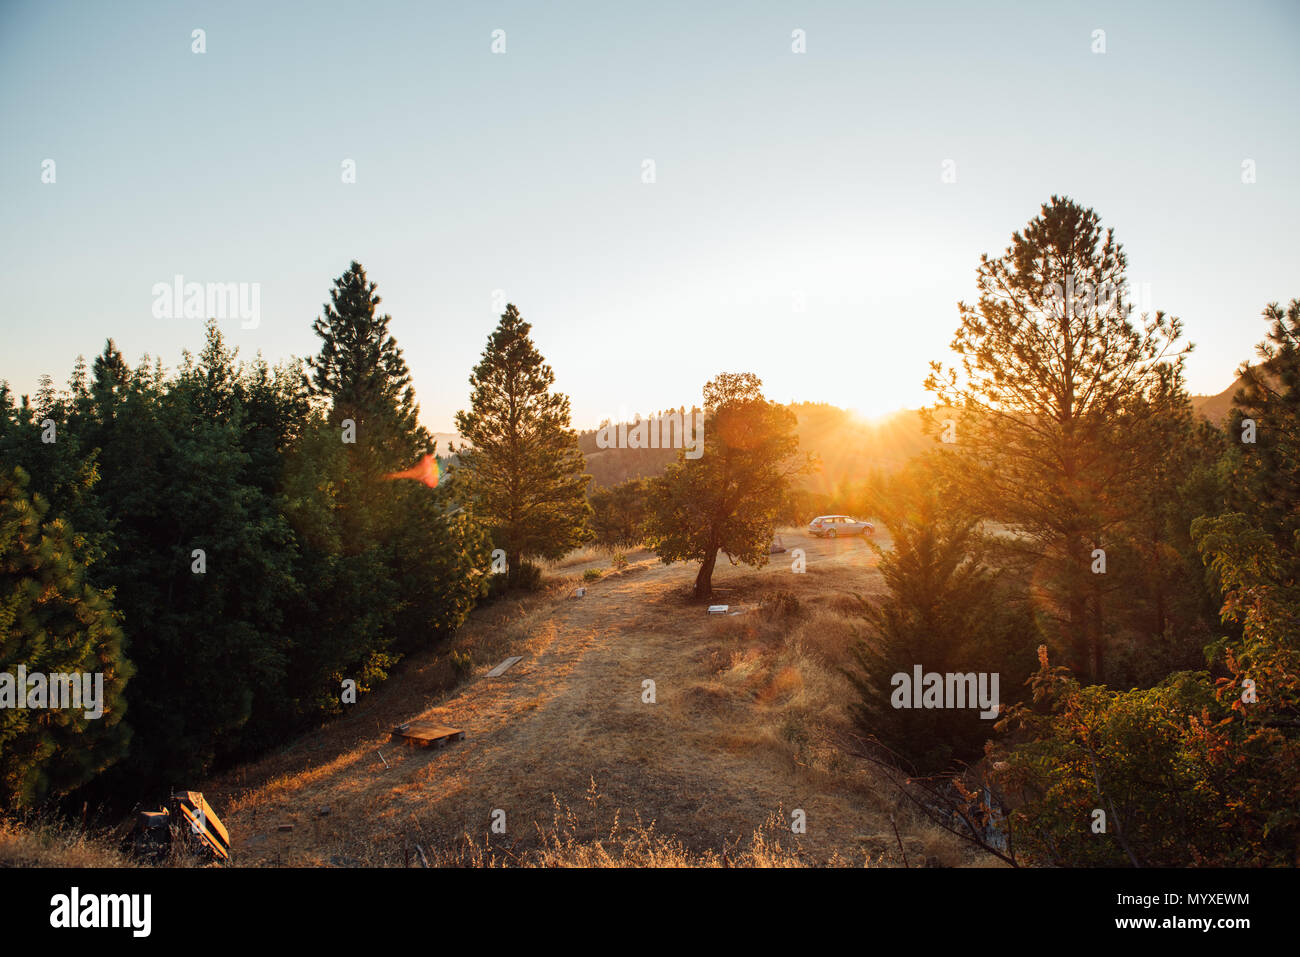 Car Camping in the Wilderness - Stock Image